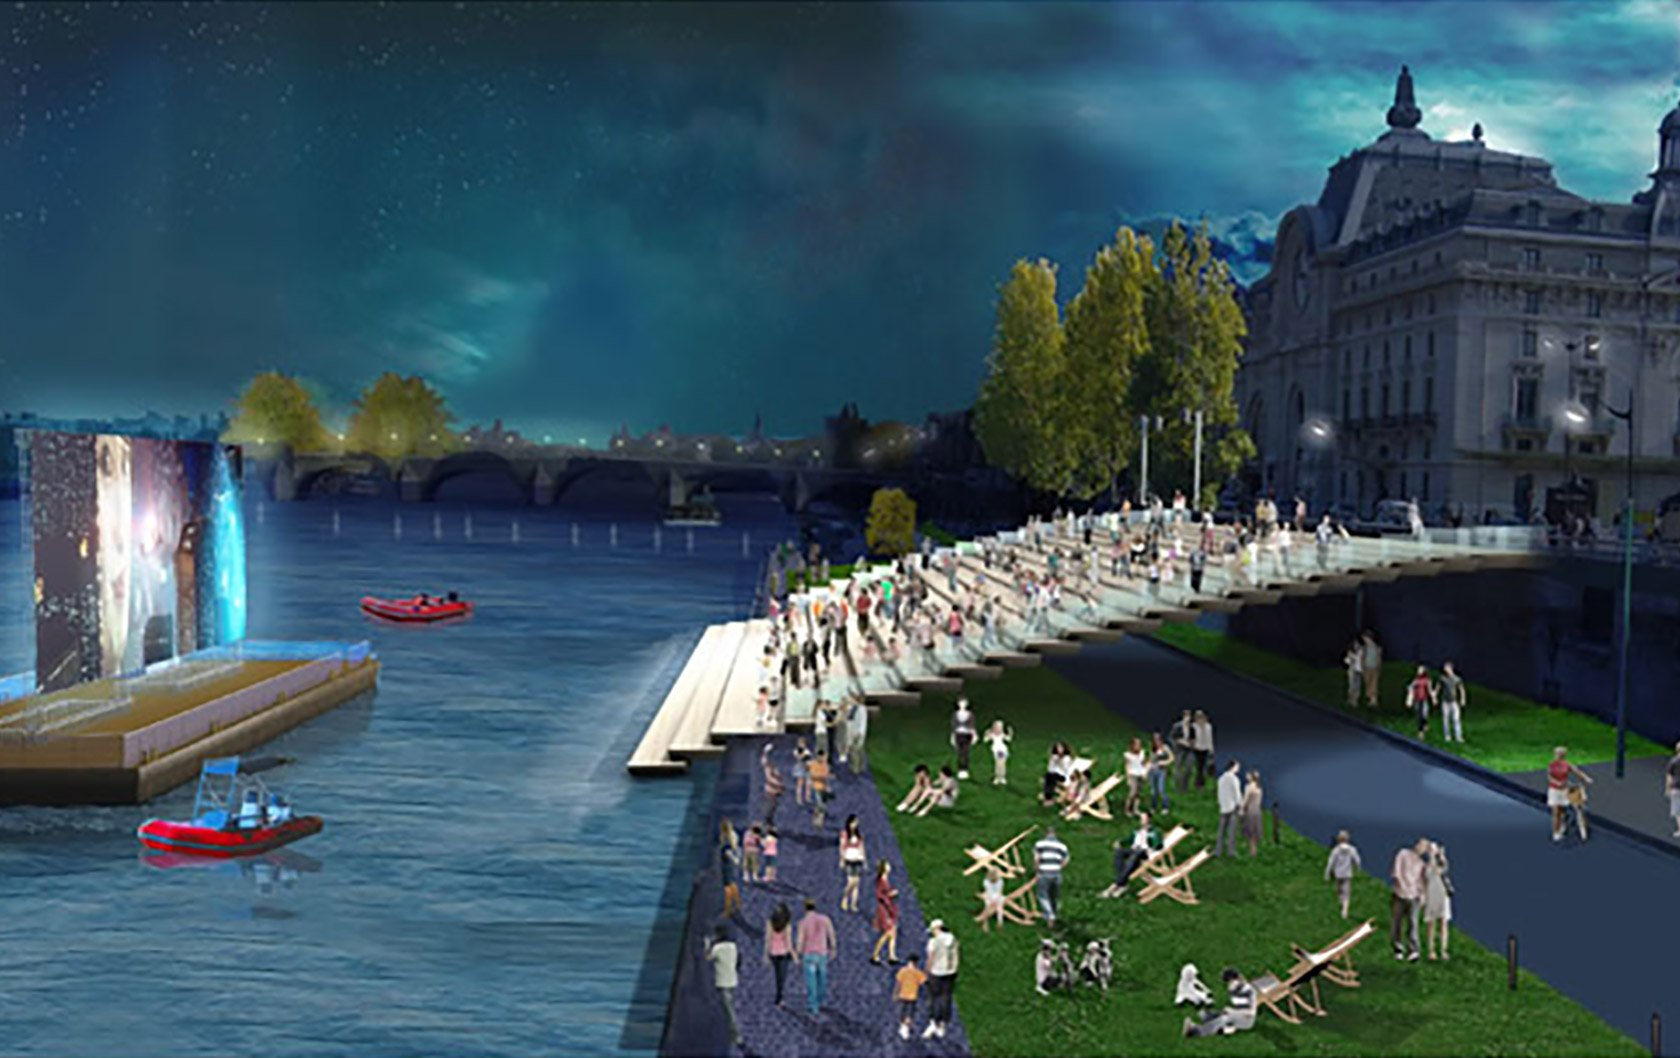 banks-of-the-seine-transformed-open-air-movies